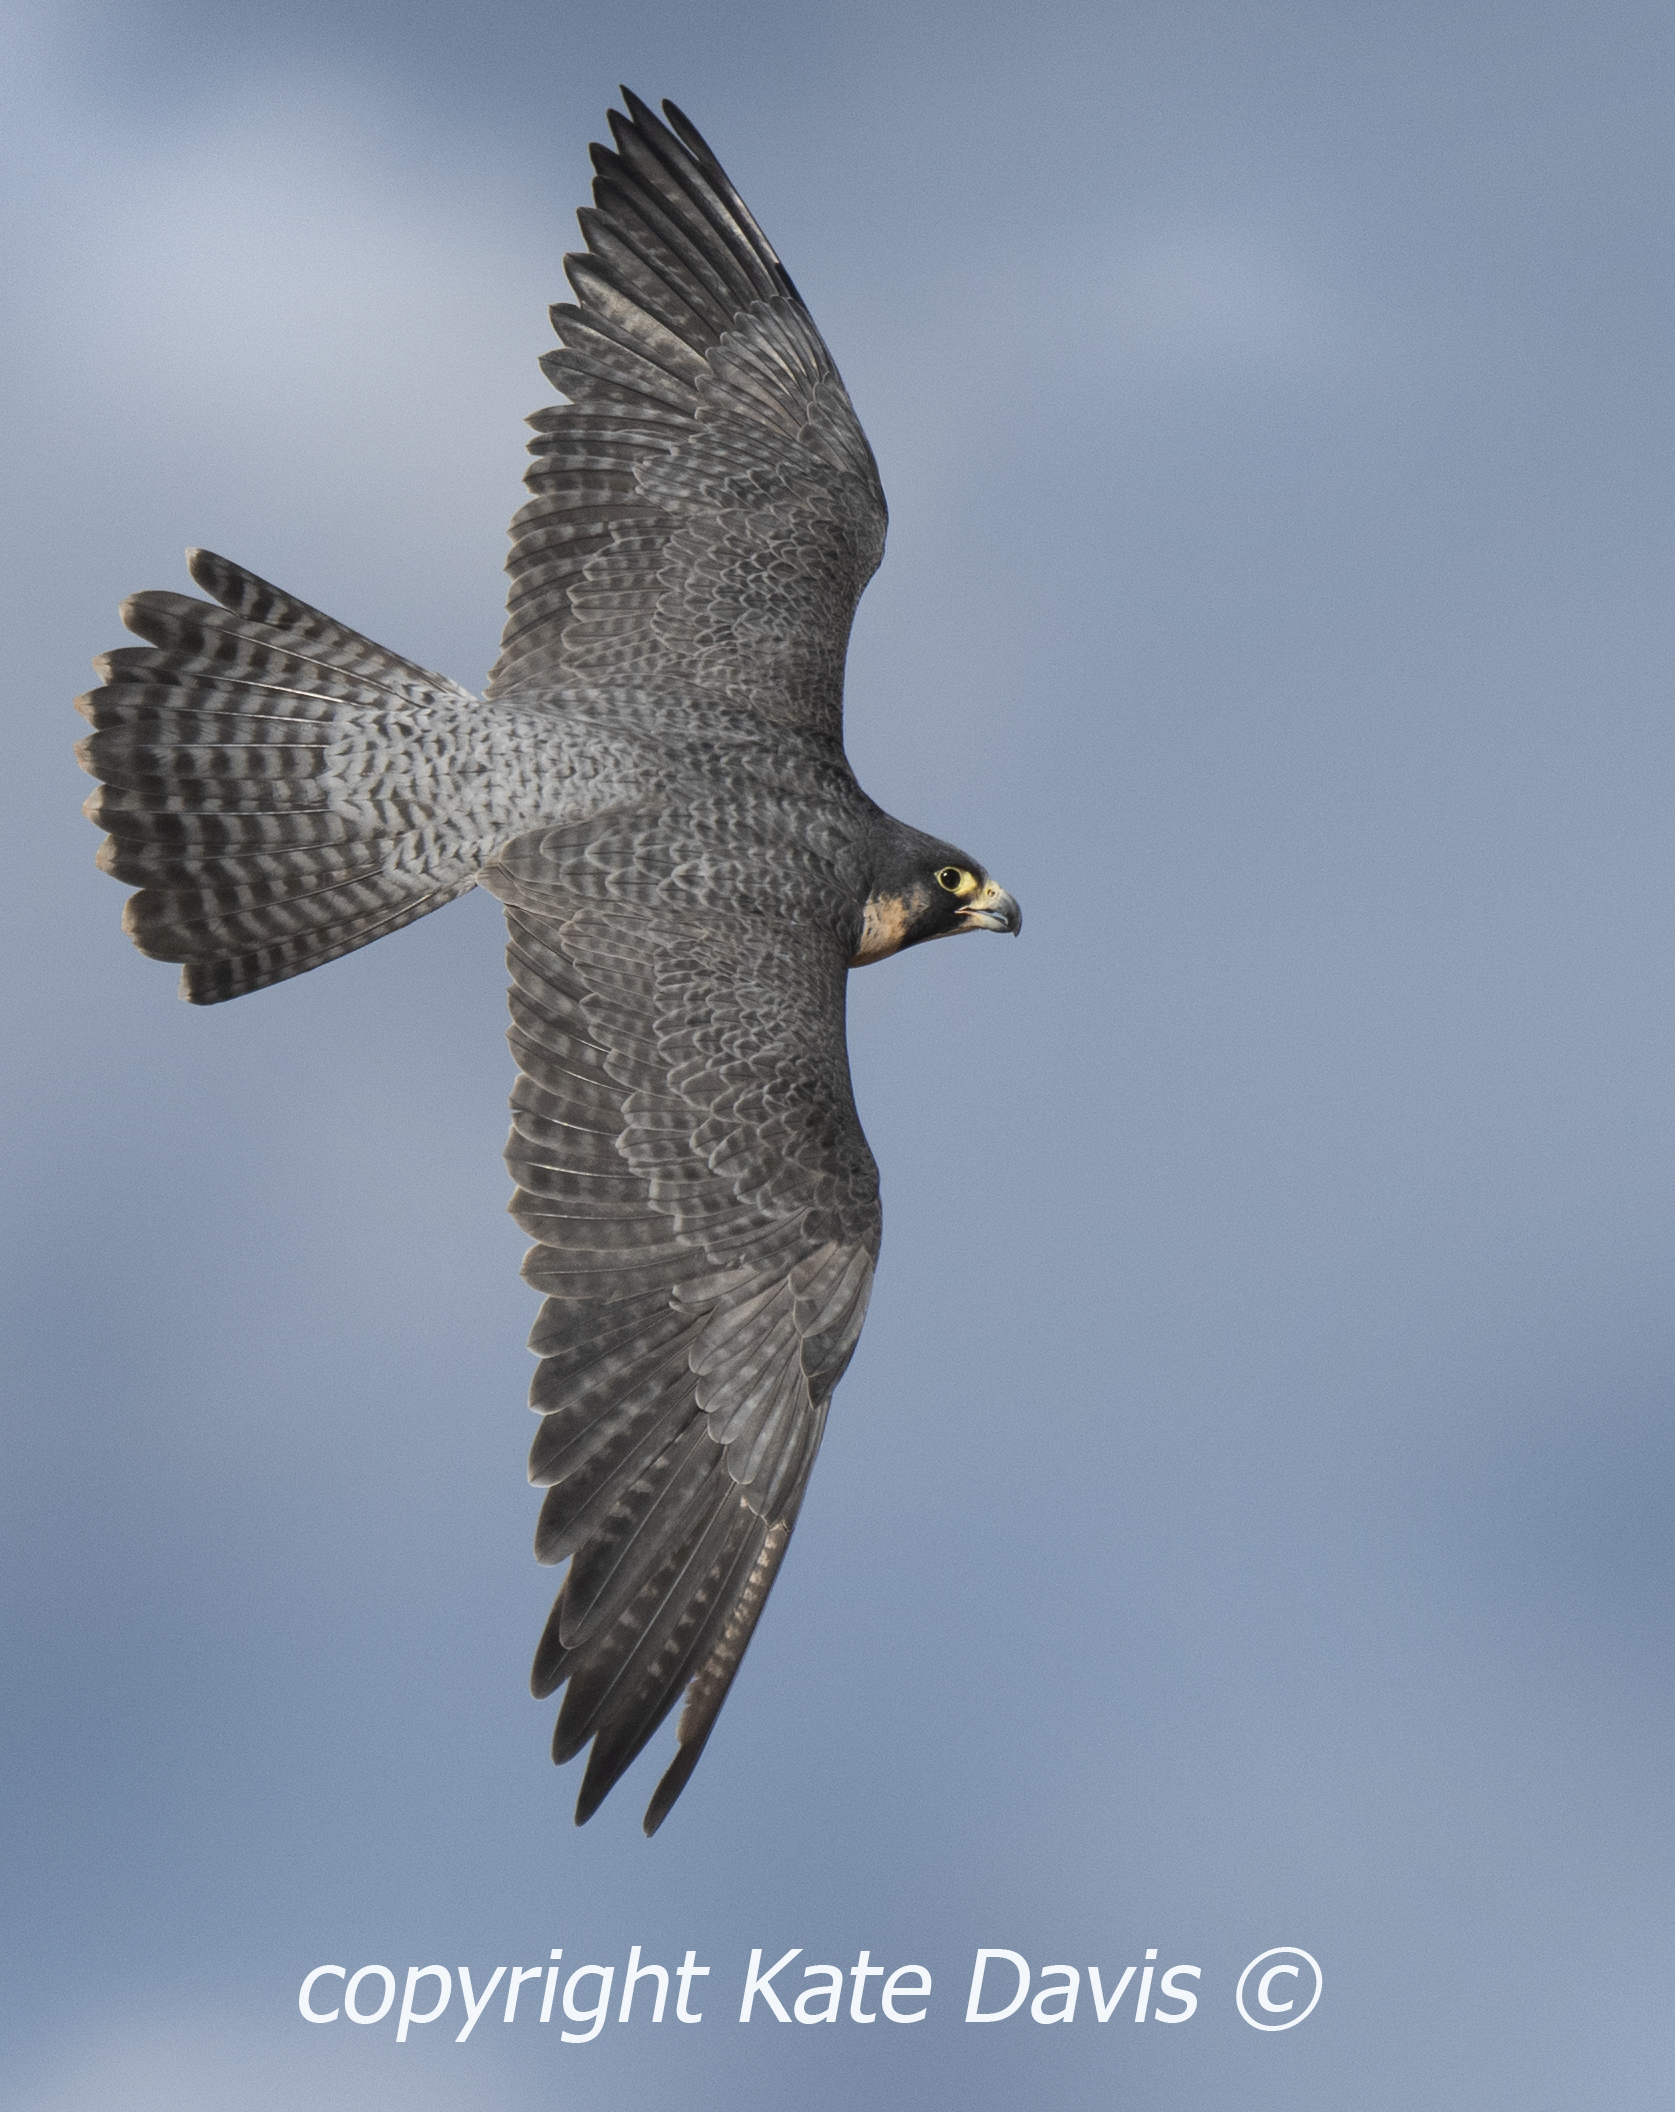 December Sibley the Peregrine